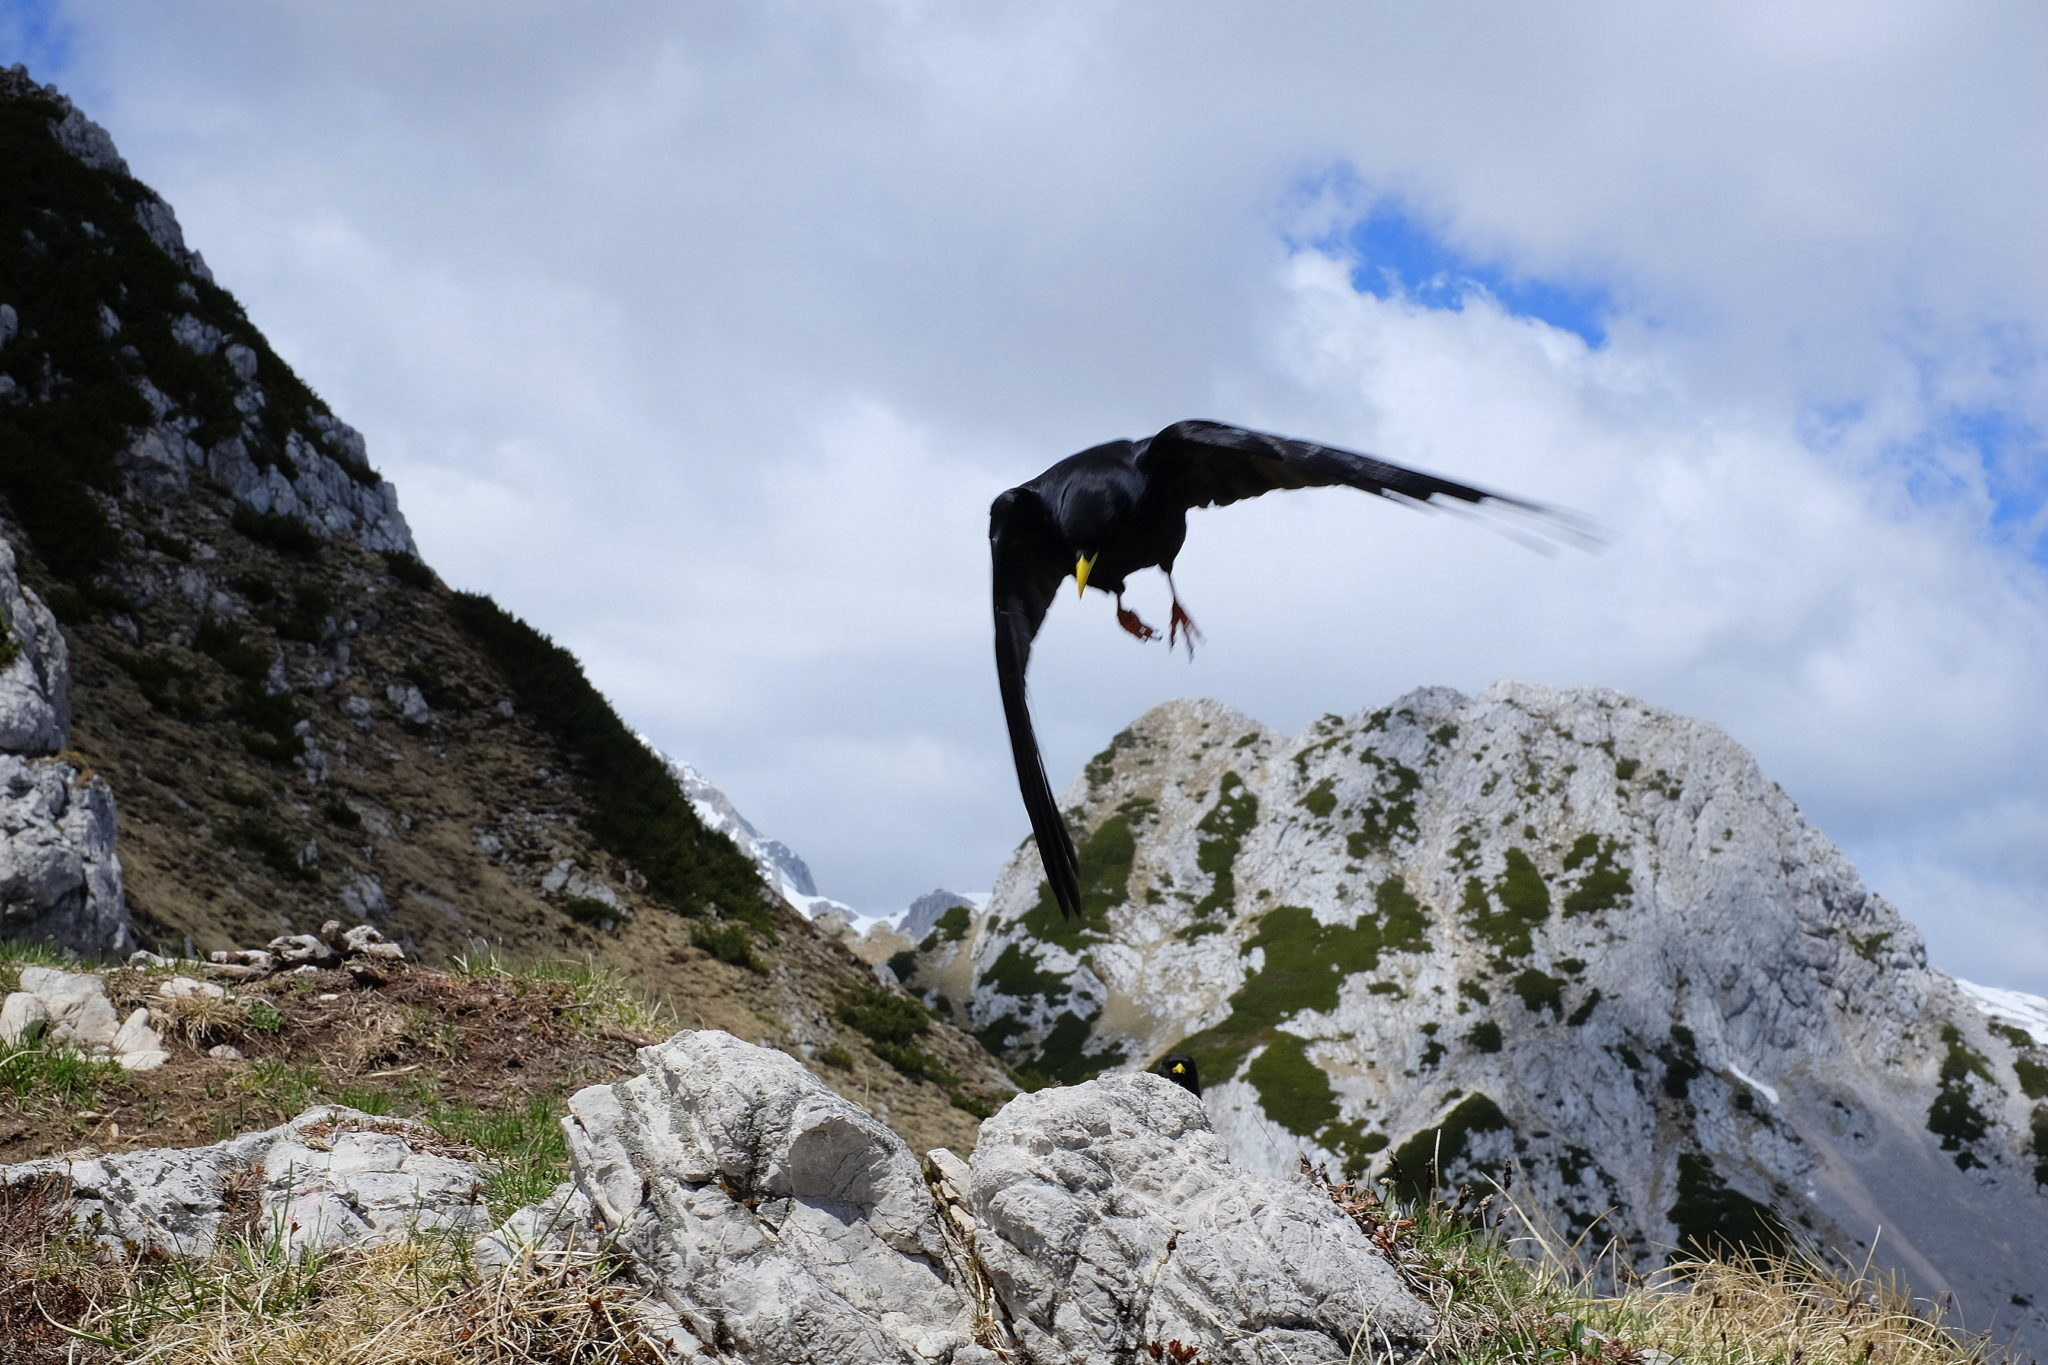 Alpine chough in the mountains